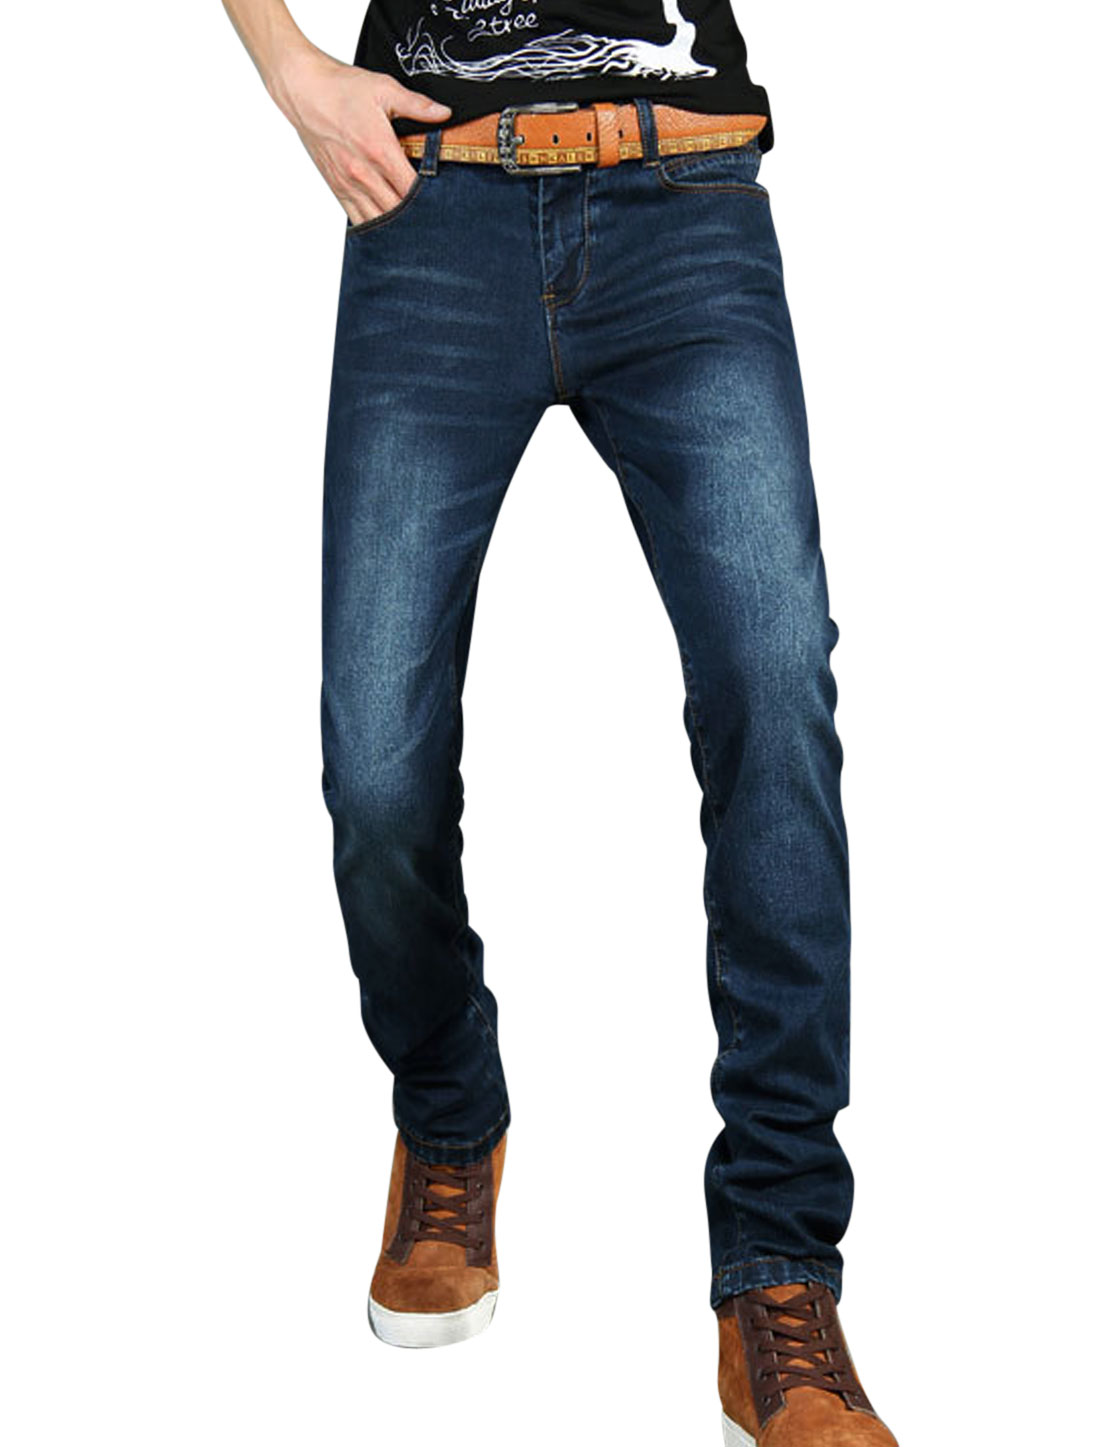 Men Dark Blue Zip Up Mid RiseTwo Pockets Back Side Pockets Casual Jeans W33